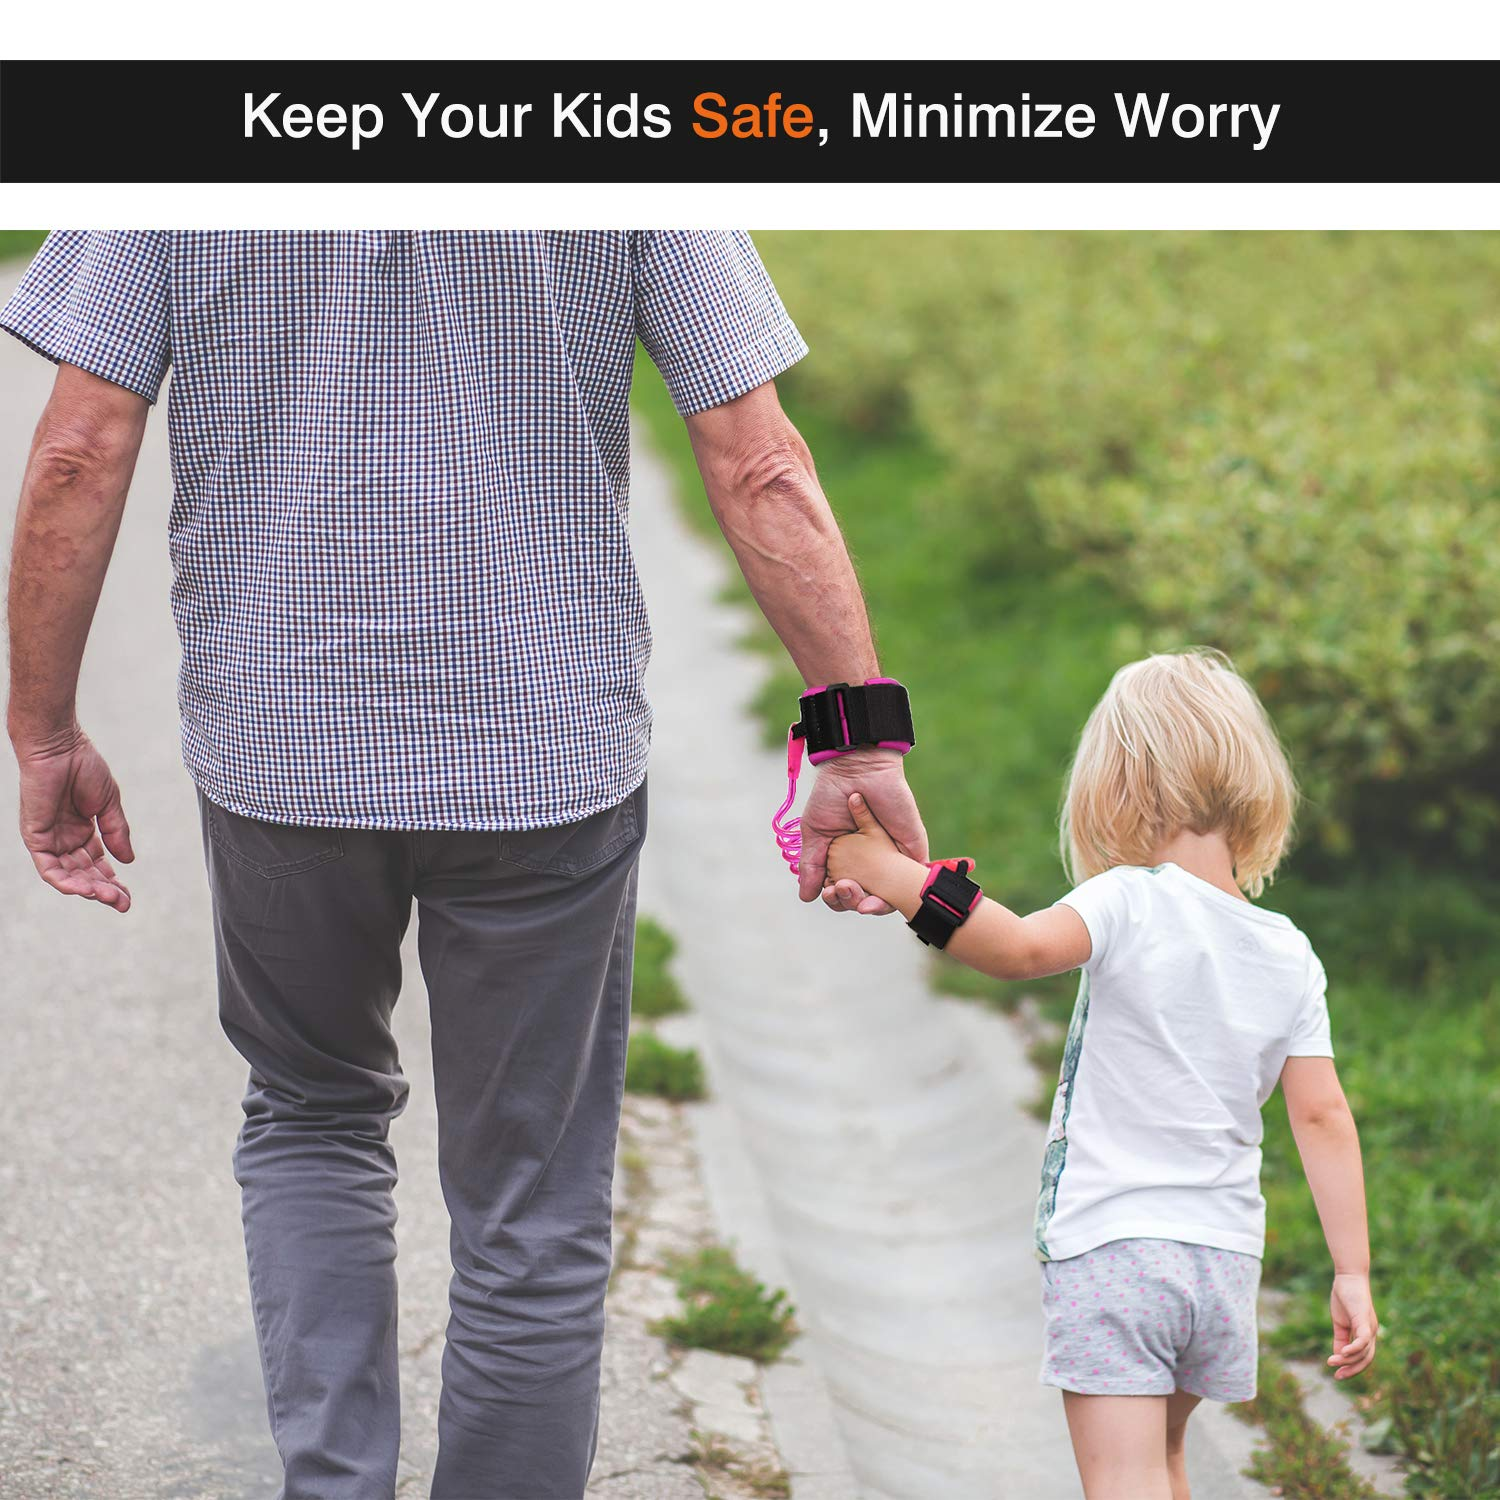 1.5M Purple Zooawa Child Outdoor Safety Hook and Loop Wristband Leash Child Safety Harness for Kids and Toddlers Anti Lost Wrist Link